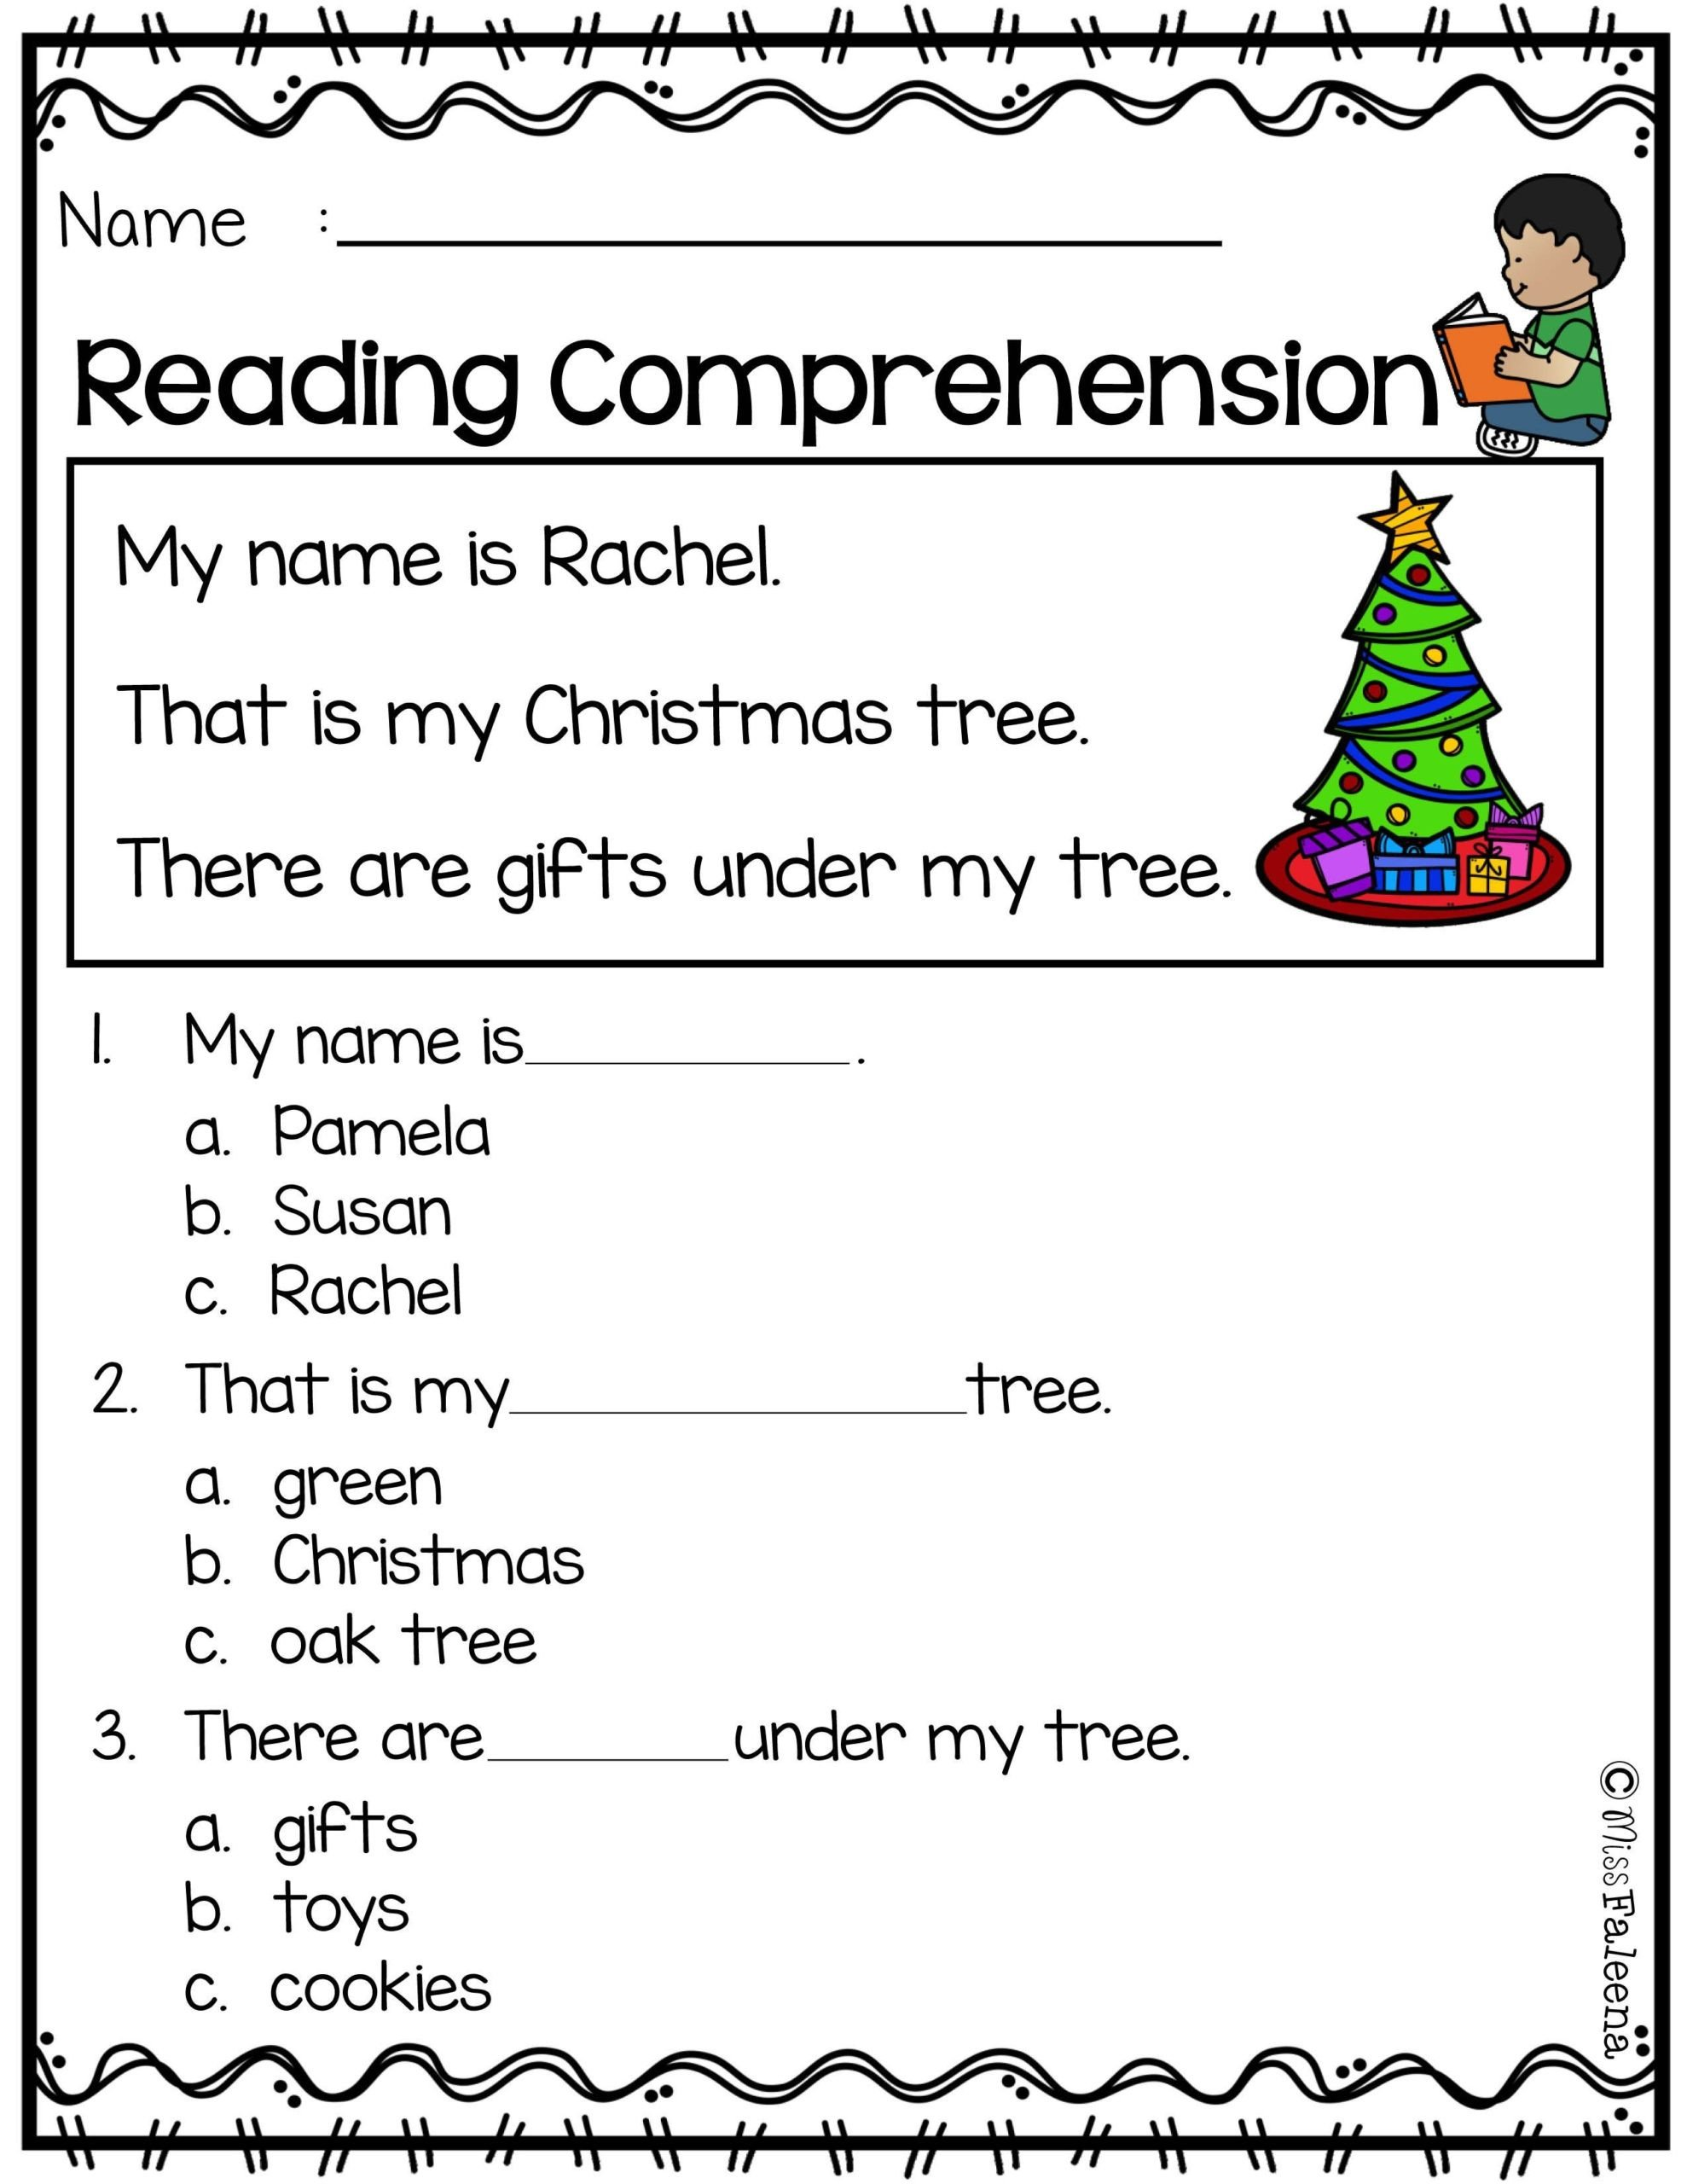 Main Idea Worksheets Third Grade Math Worksheet Third Grade Readingsion Worksheets 3rd